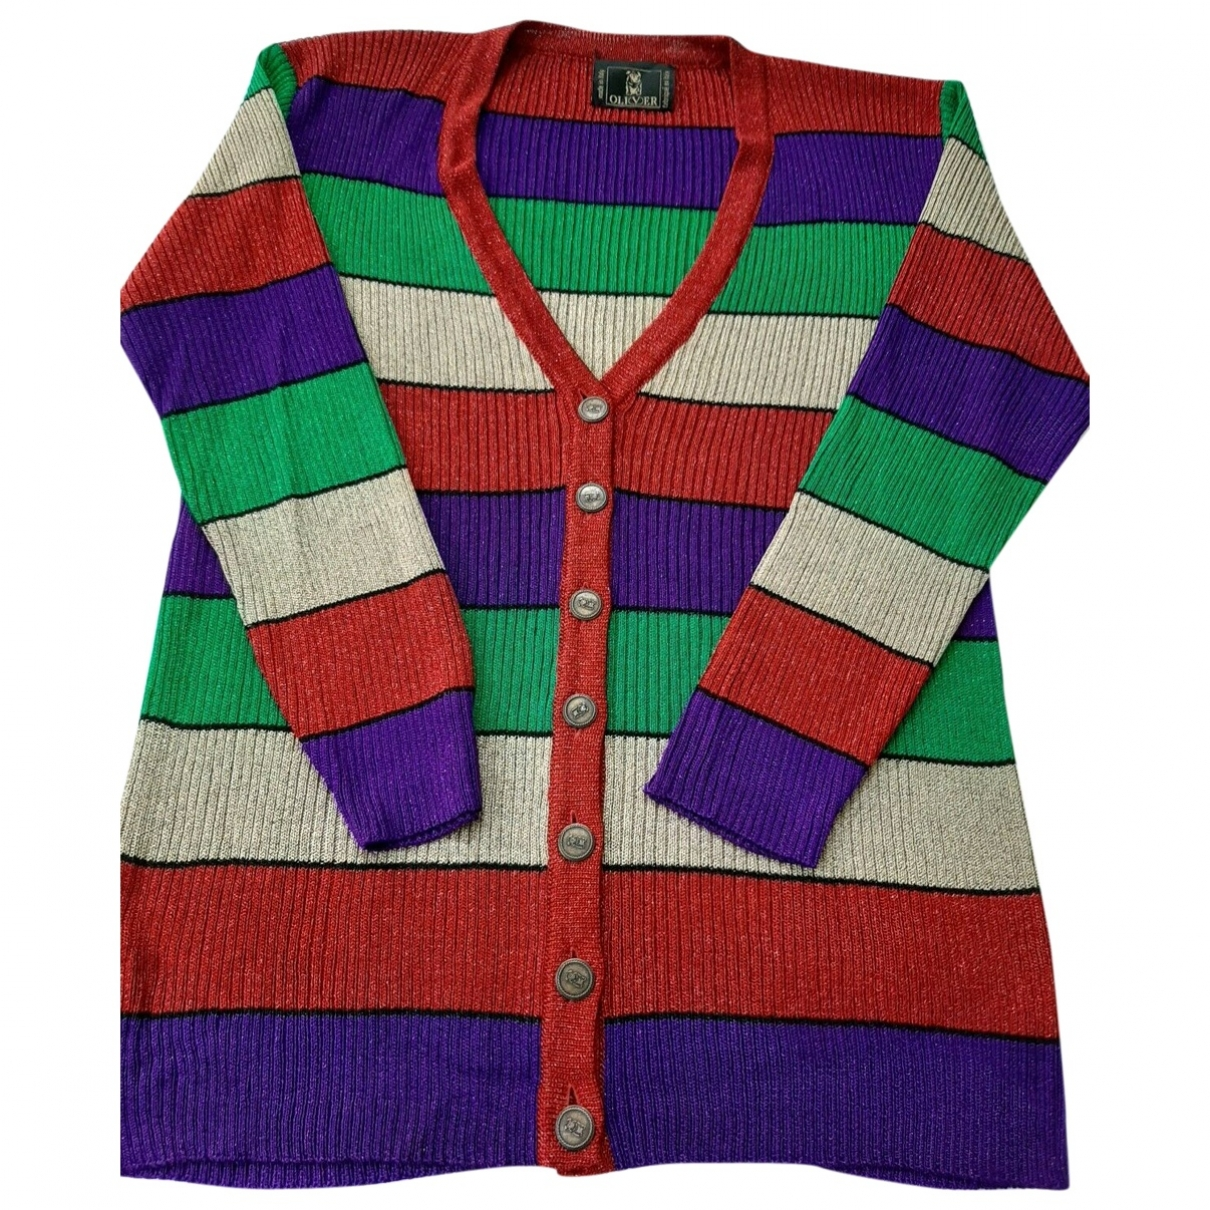 Valentino Garavani \N Multicolour Knitwear for Women L International